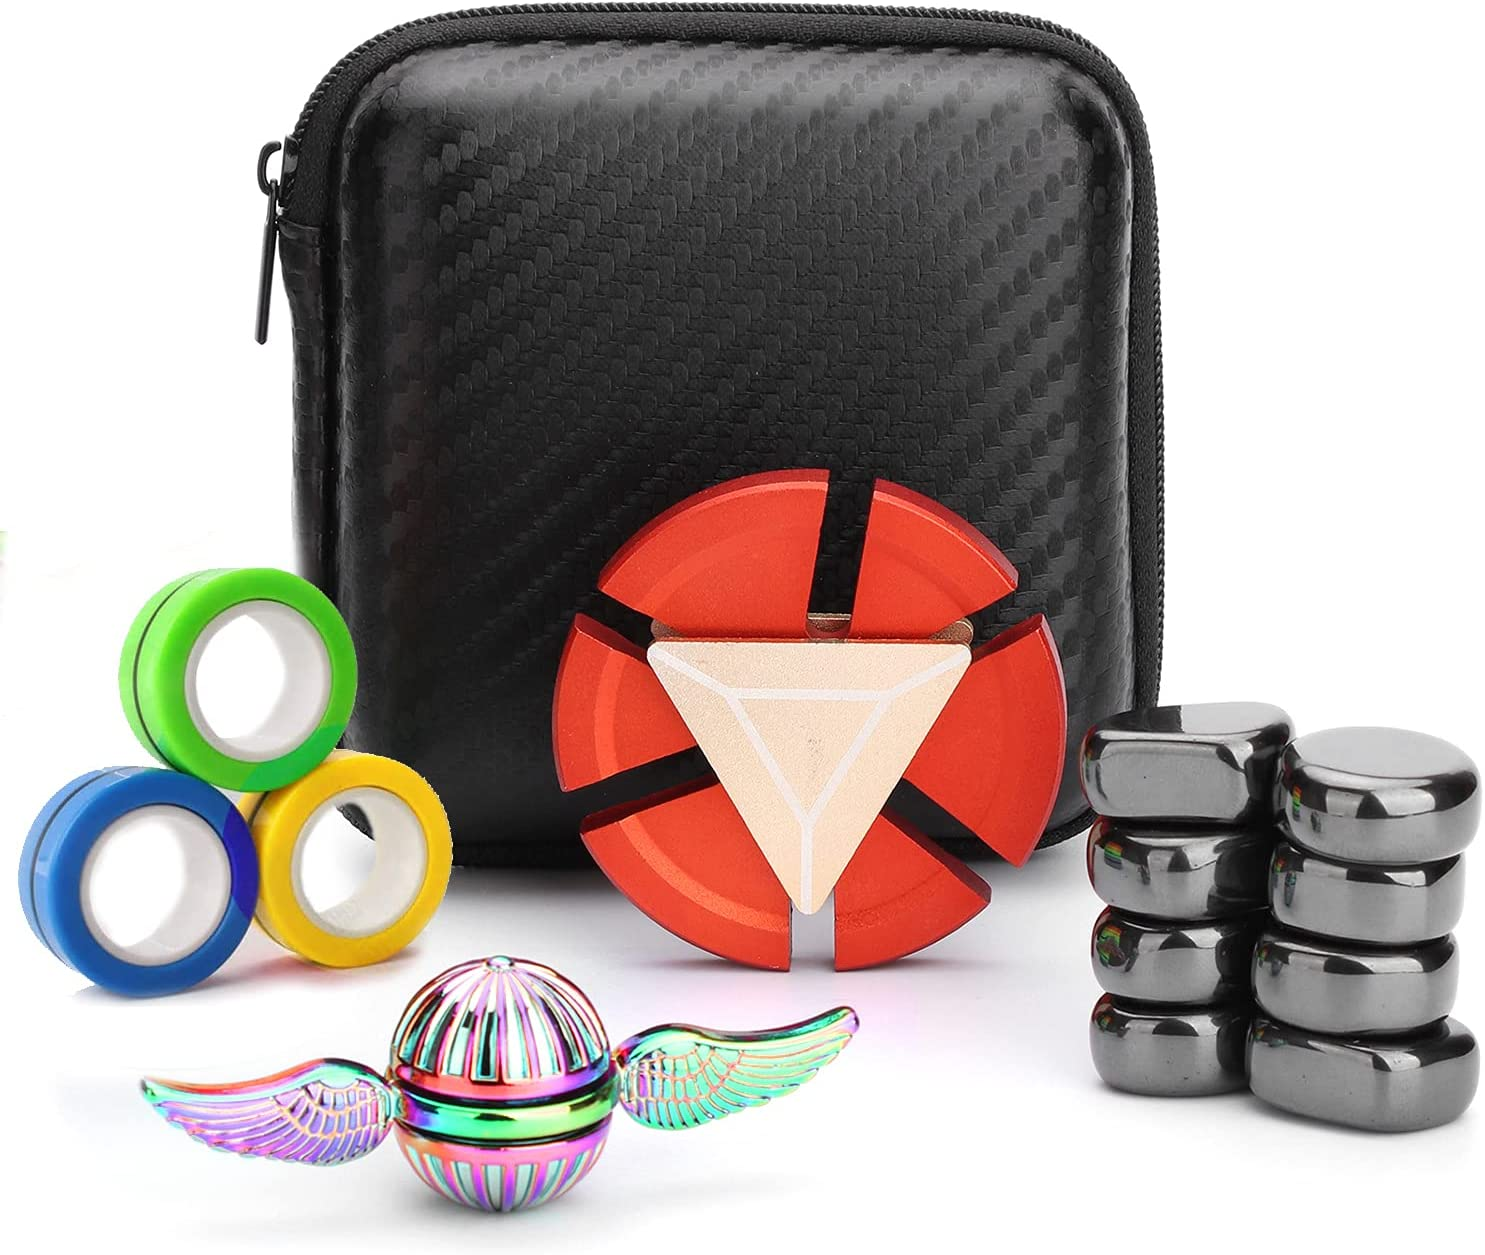 Cool Fidget Spinners Pack Toys Set Gifts for Kids Adults, Finger